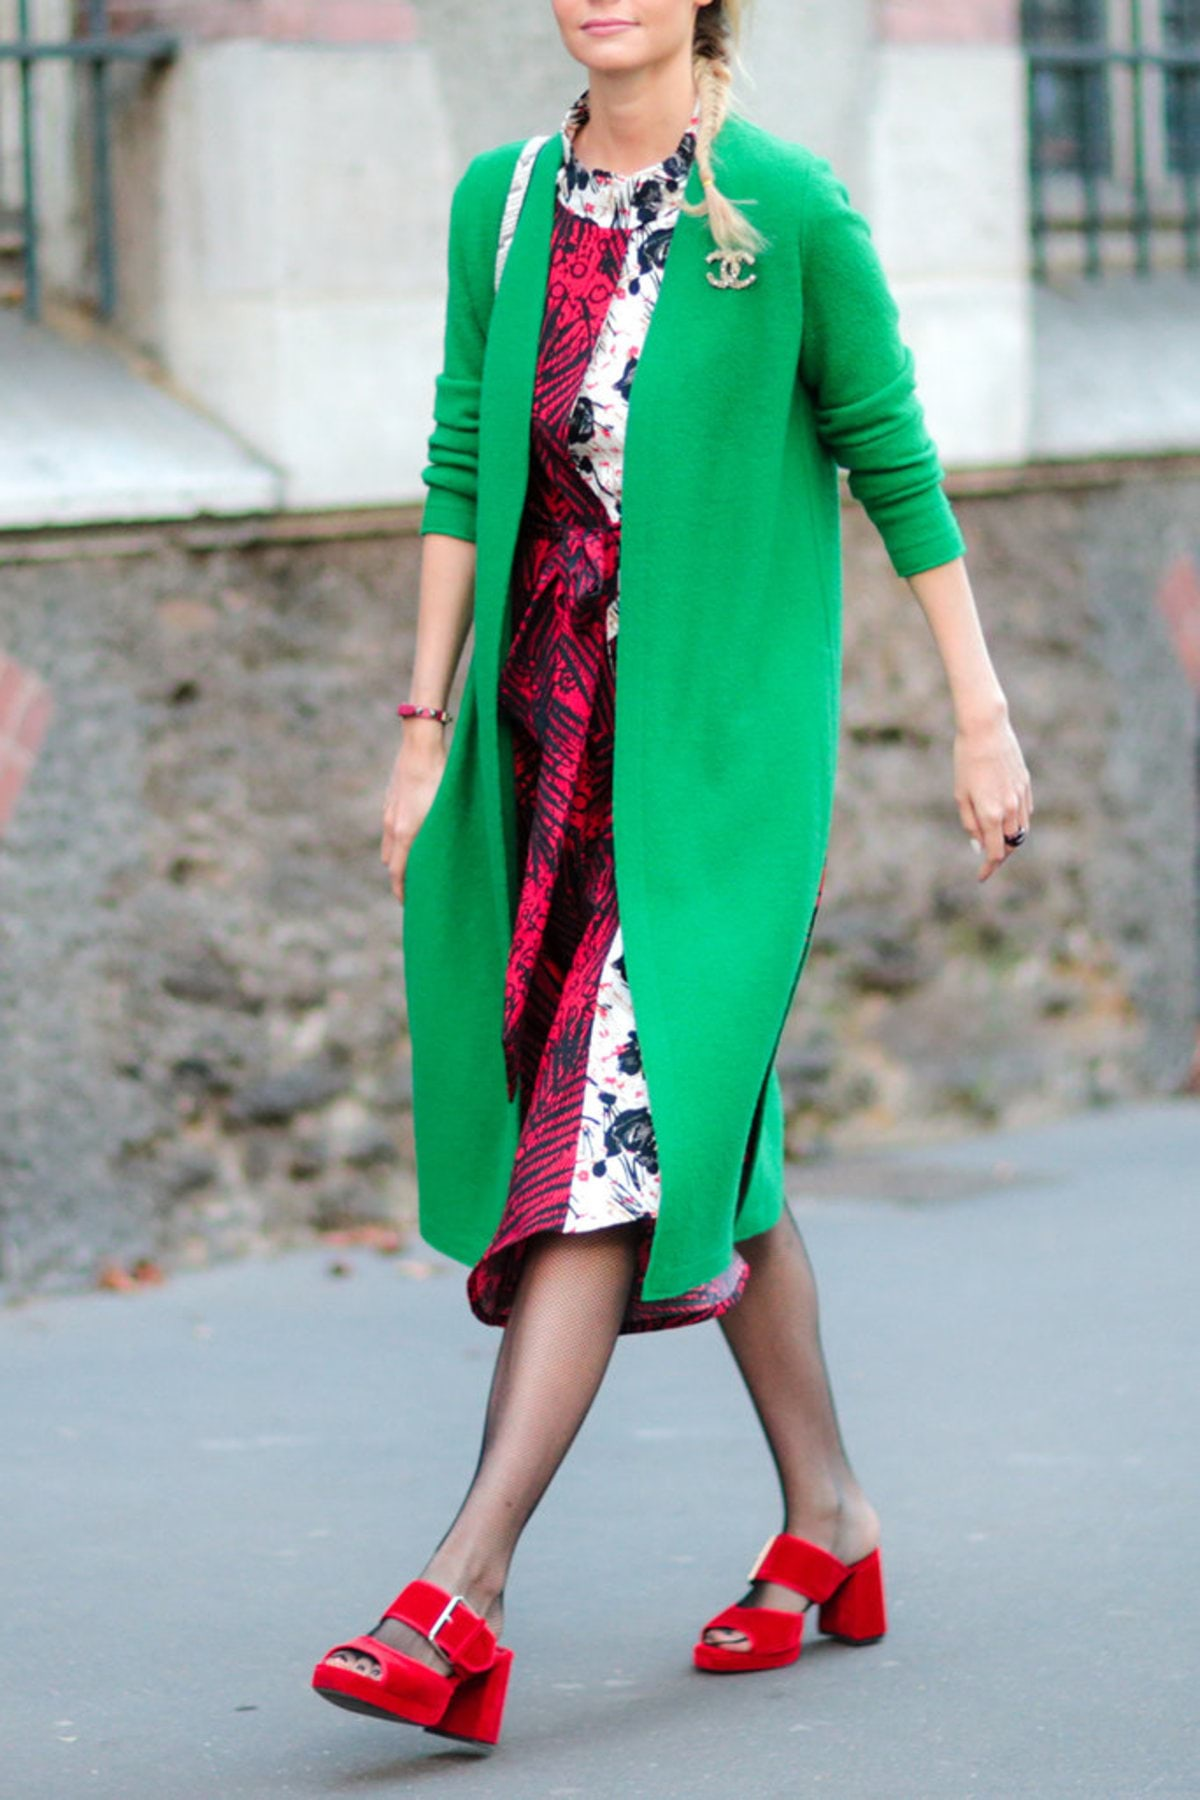 120816-red-green-street-style-4